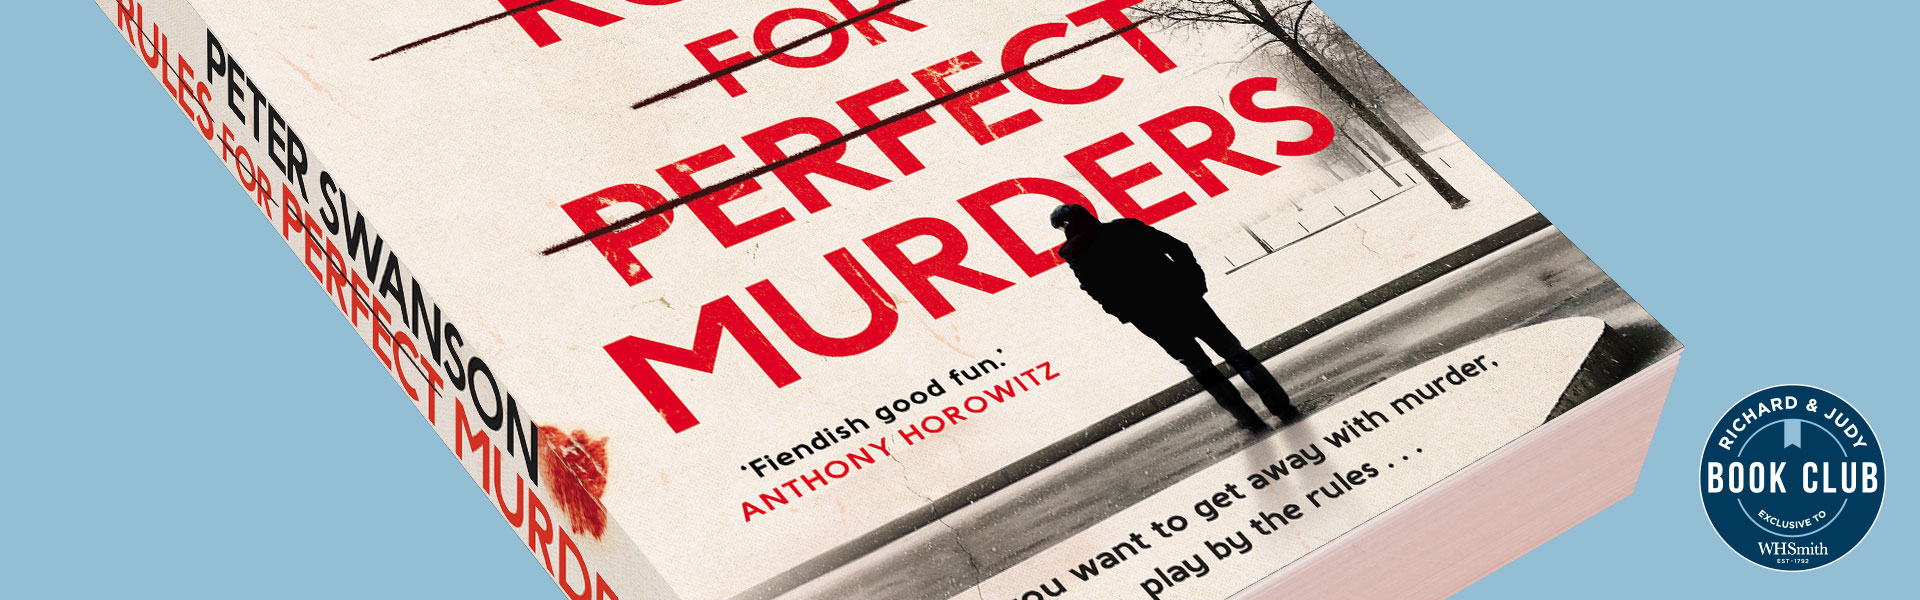 Richard & Judy Introduce Rules for Perfect Murders by Peter Swanson